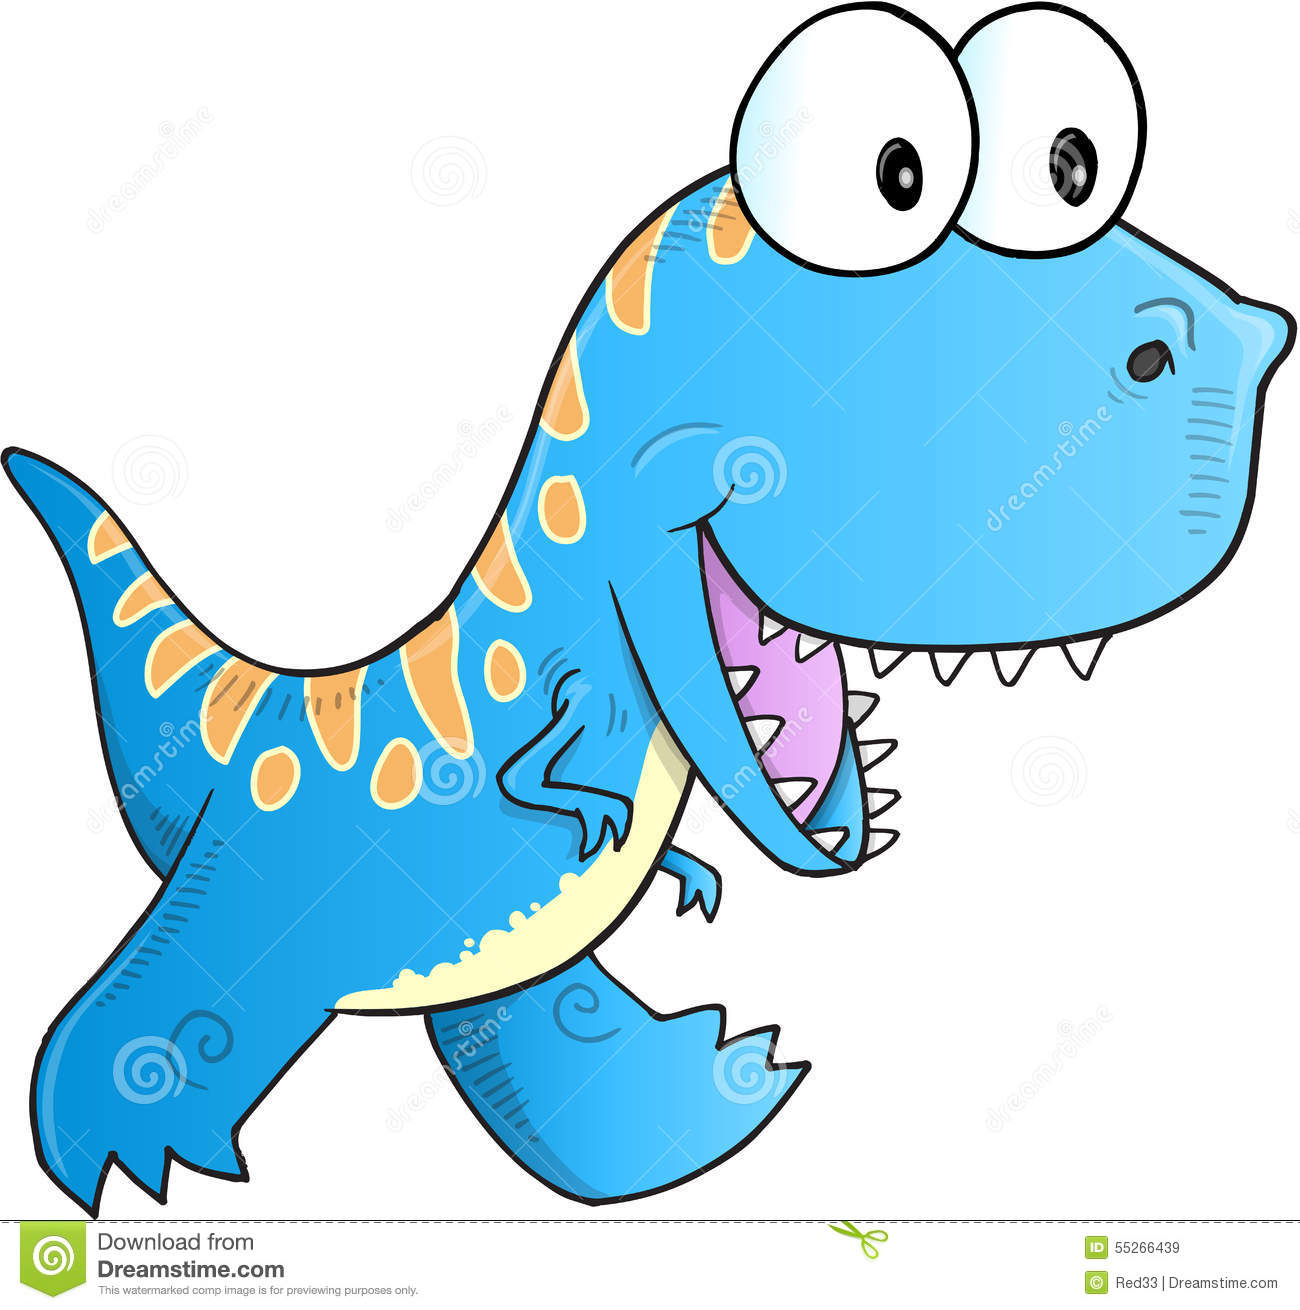 Select Dinosaur games, Dinosaur Coloring Pages, Dinosaur Coloring games, Dinosaur Pictures or Dinosaur Names for your children and have fun! Comment below if you any have opinion, suggestions or questions, feel free to ask us.